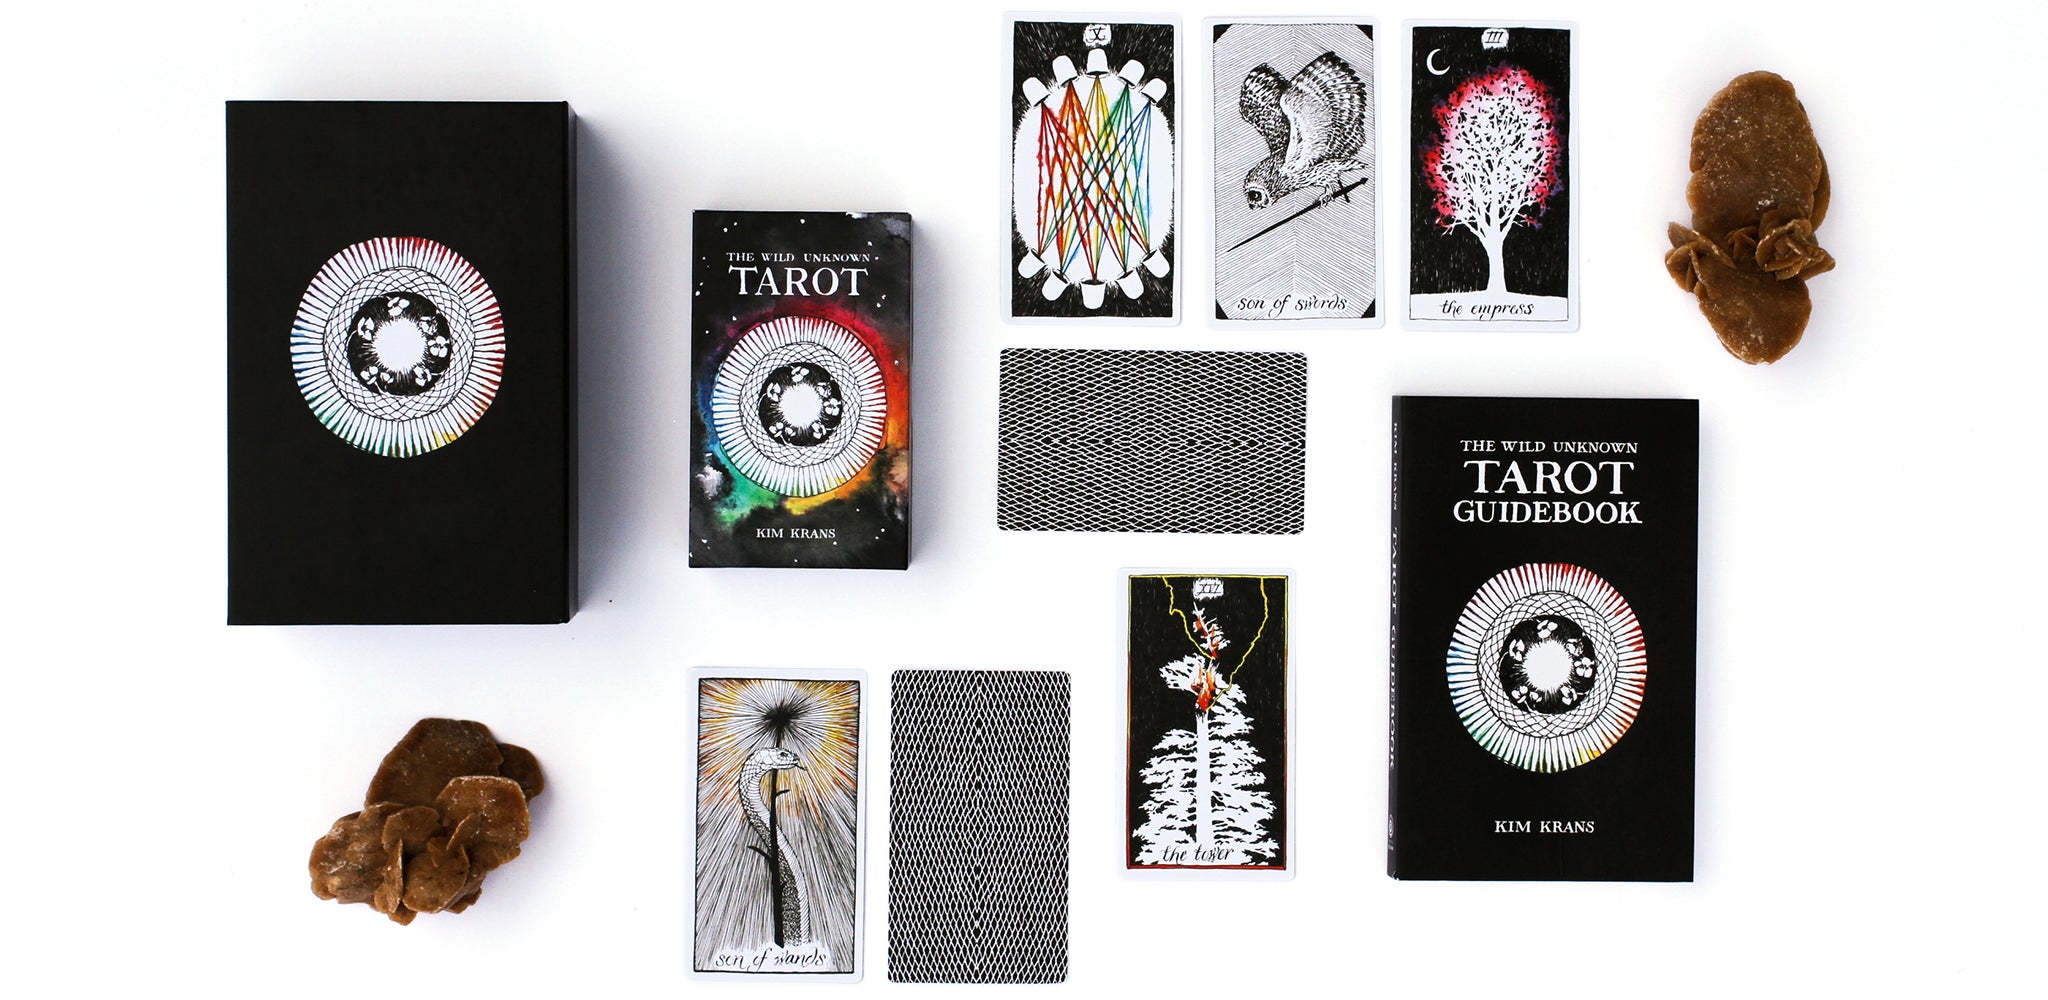 https://cdn.shopify.com/s/files/1/0154/2097/files/hero_tarot_boxset_2.jpg?7384297390838869694